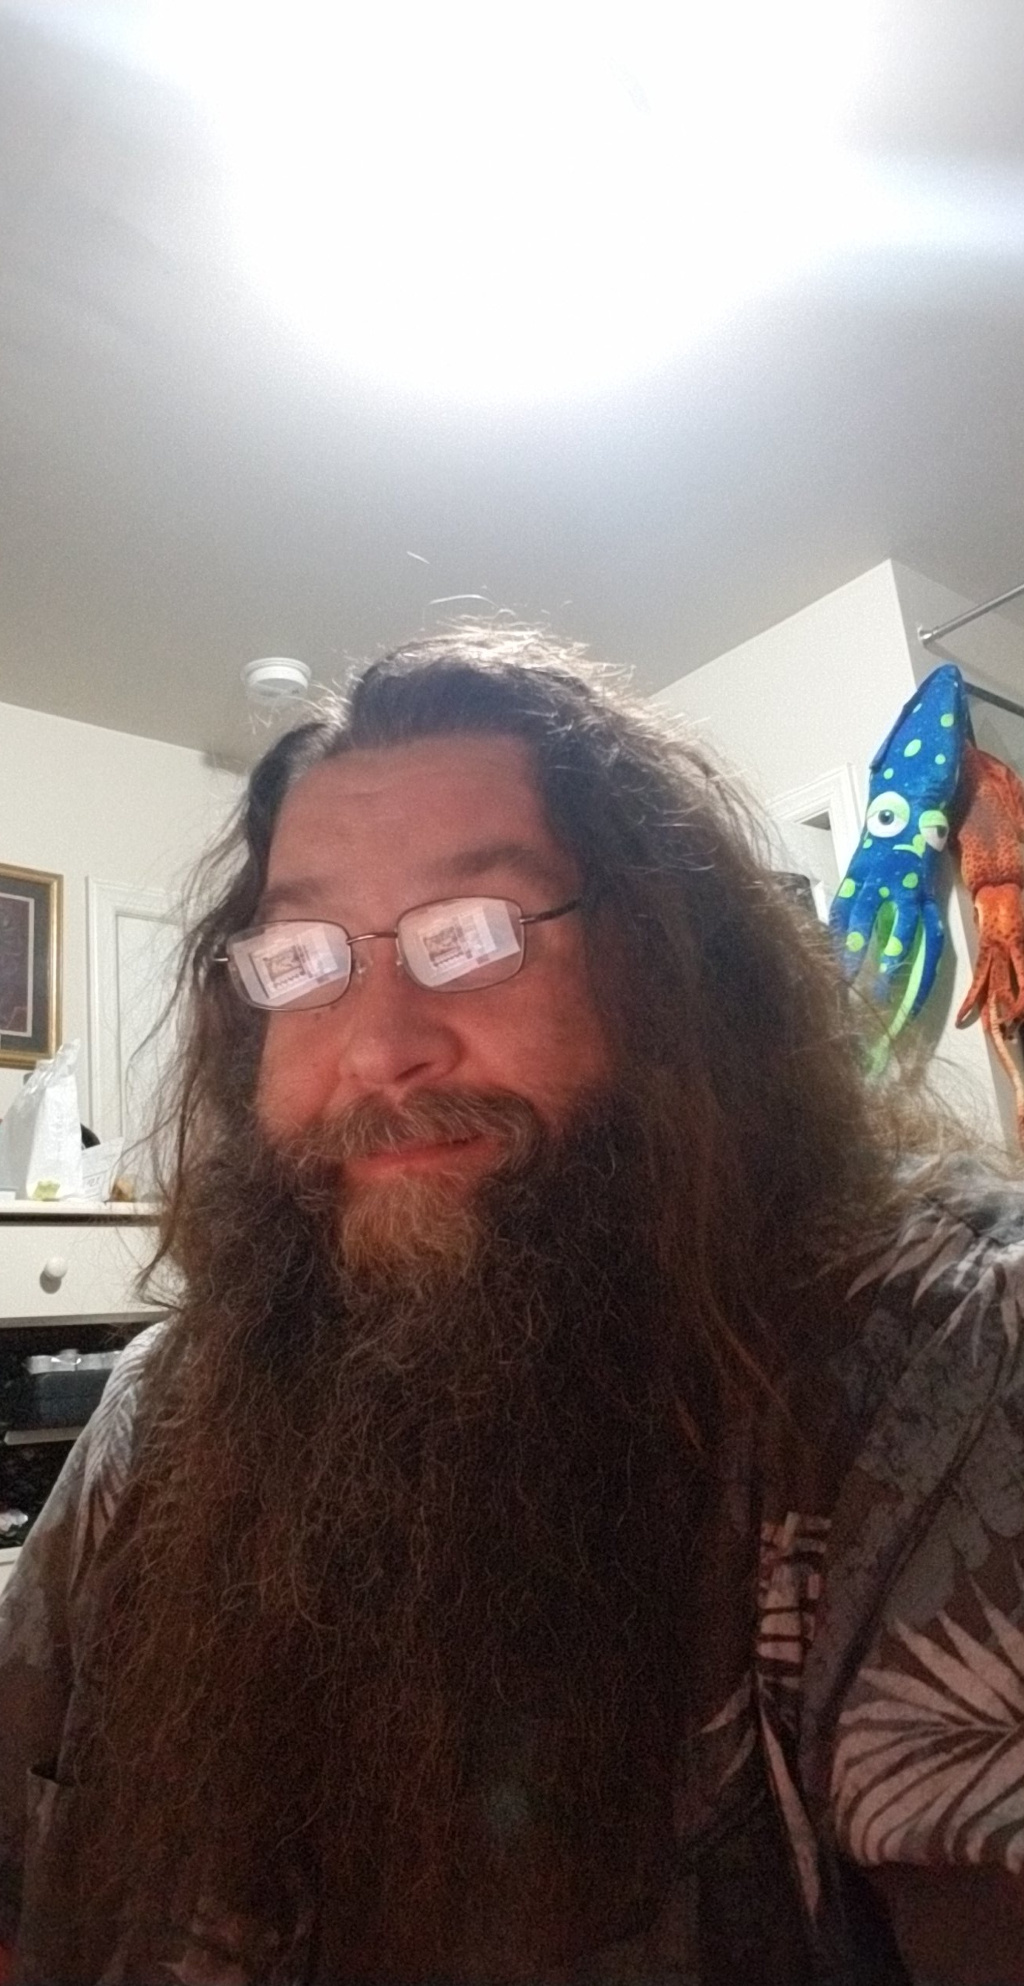 A self-portrait taken with a smartphone of an individual with long hair and a large beard sitting at a desk.